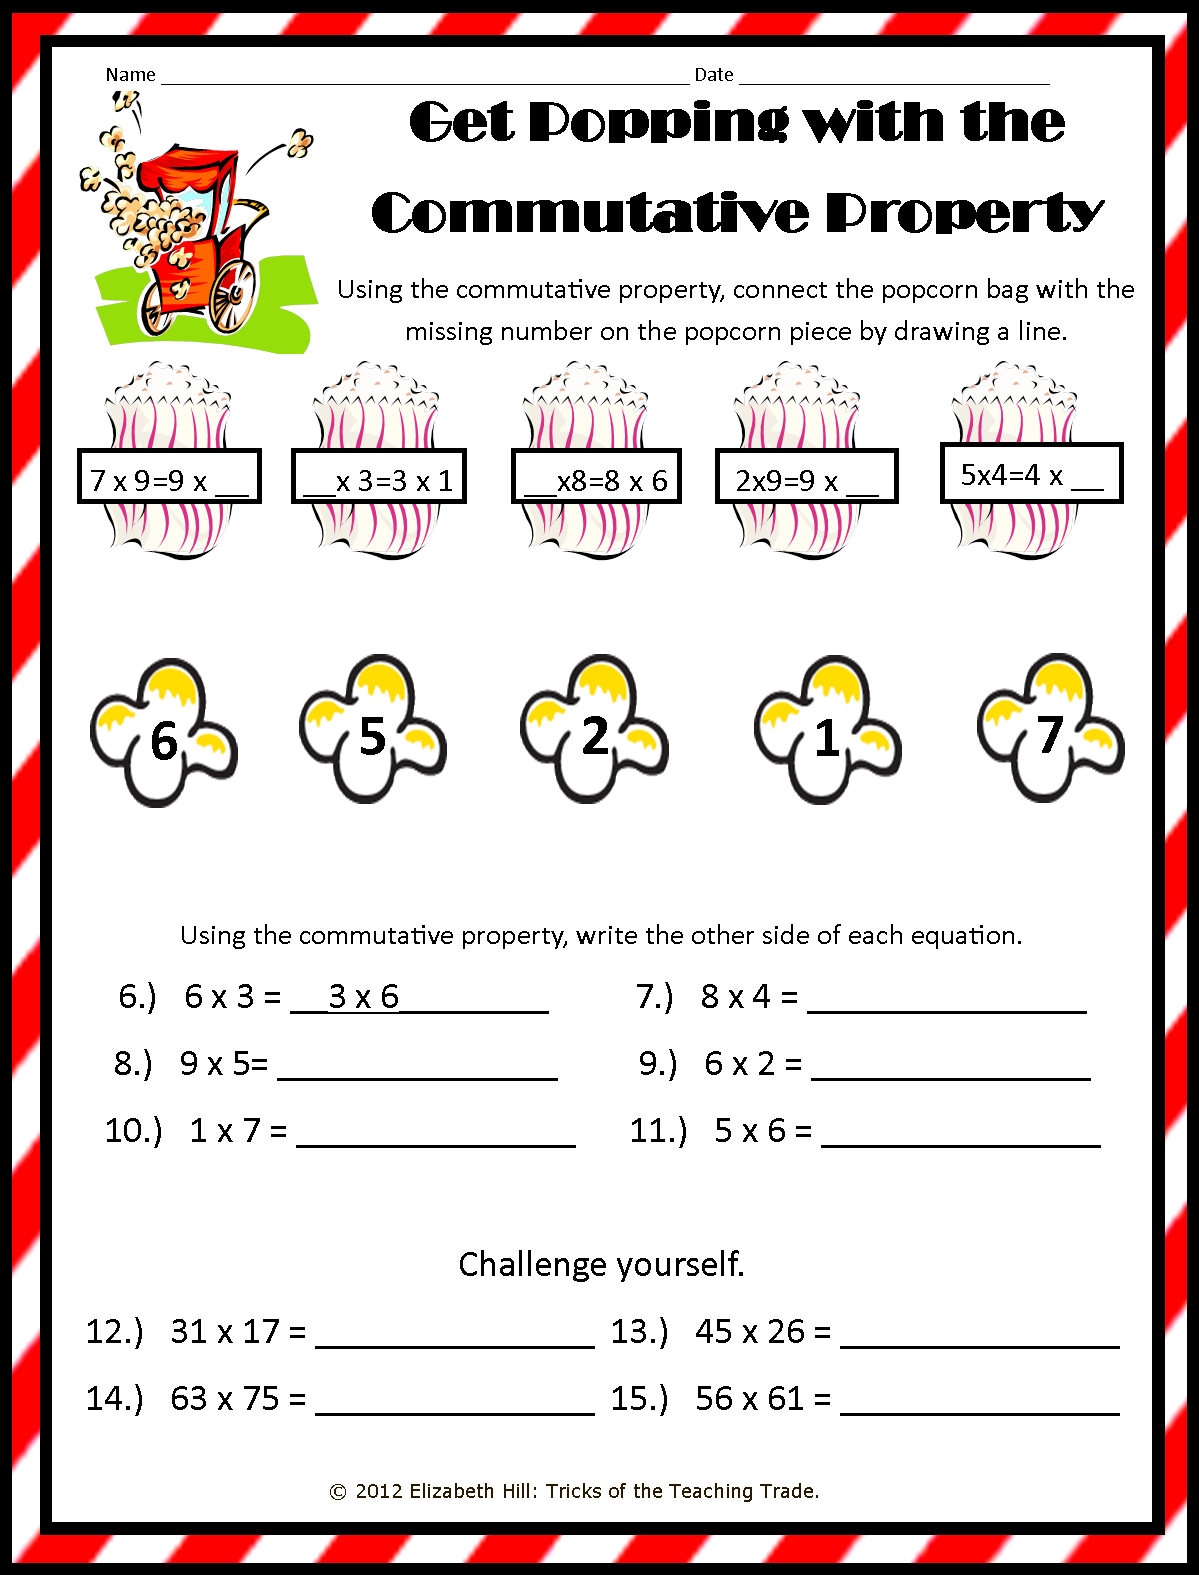 Worksheet 595800 Commutative Property Multiplication Worksheets – Properties of Multiplication Worksheets